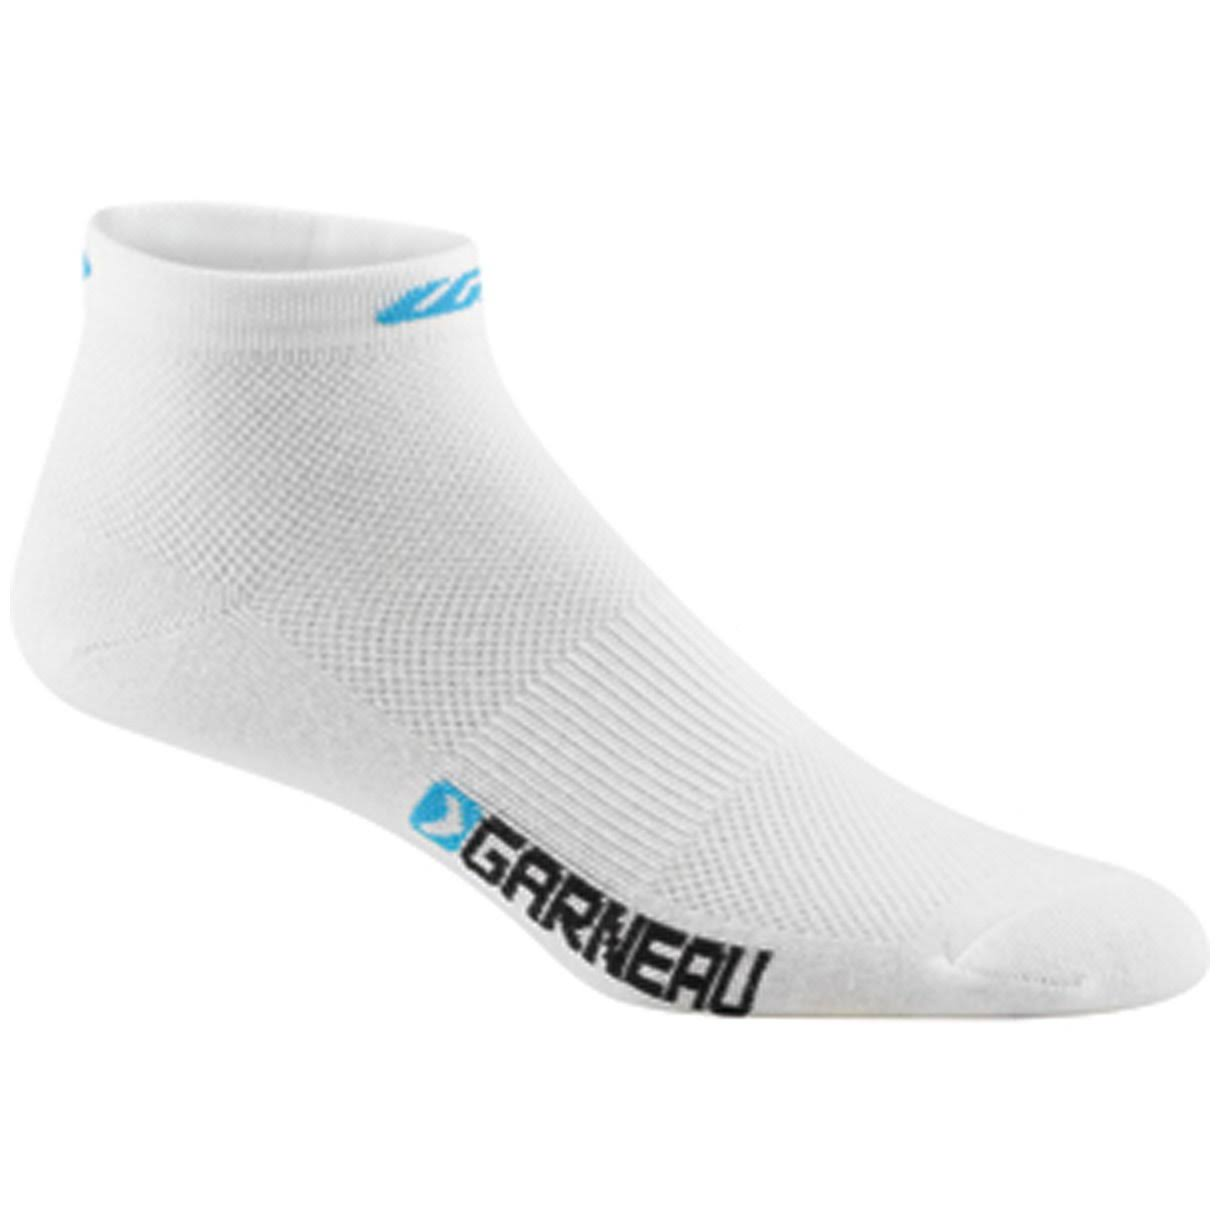 Louis Garneau Women's Low Versis Cycling Socks - 3 Pack